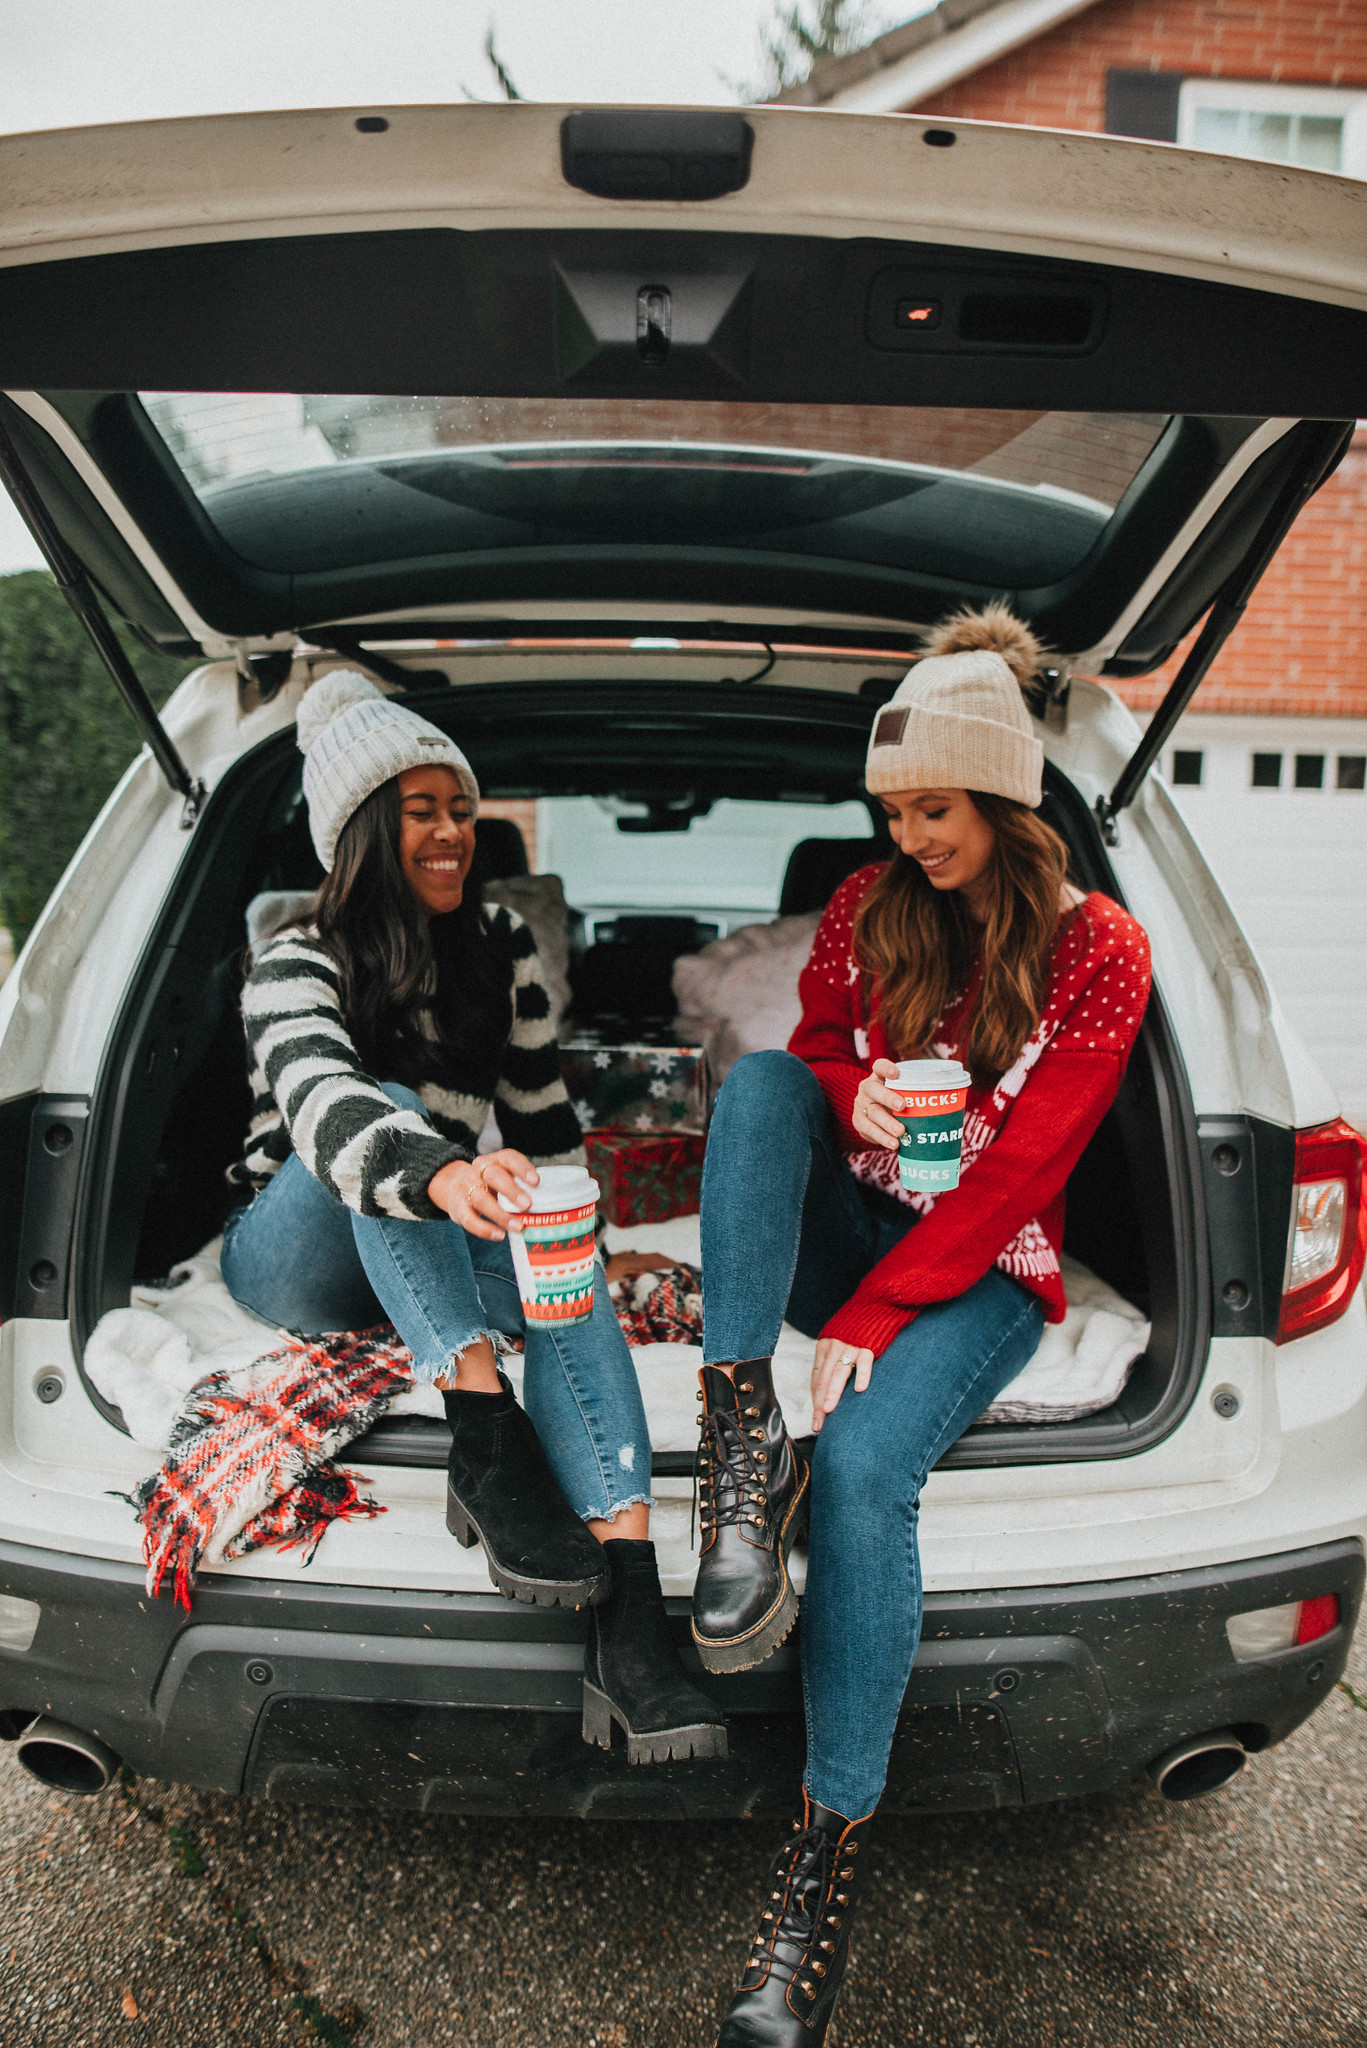 Sitting in the back of the SUV with your best friend - best friend holiday photo shoot ideas - Emma's Edition - image from www.emmasedition.com